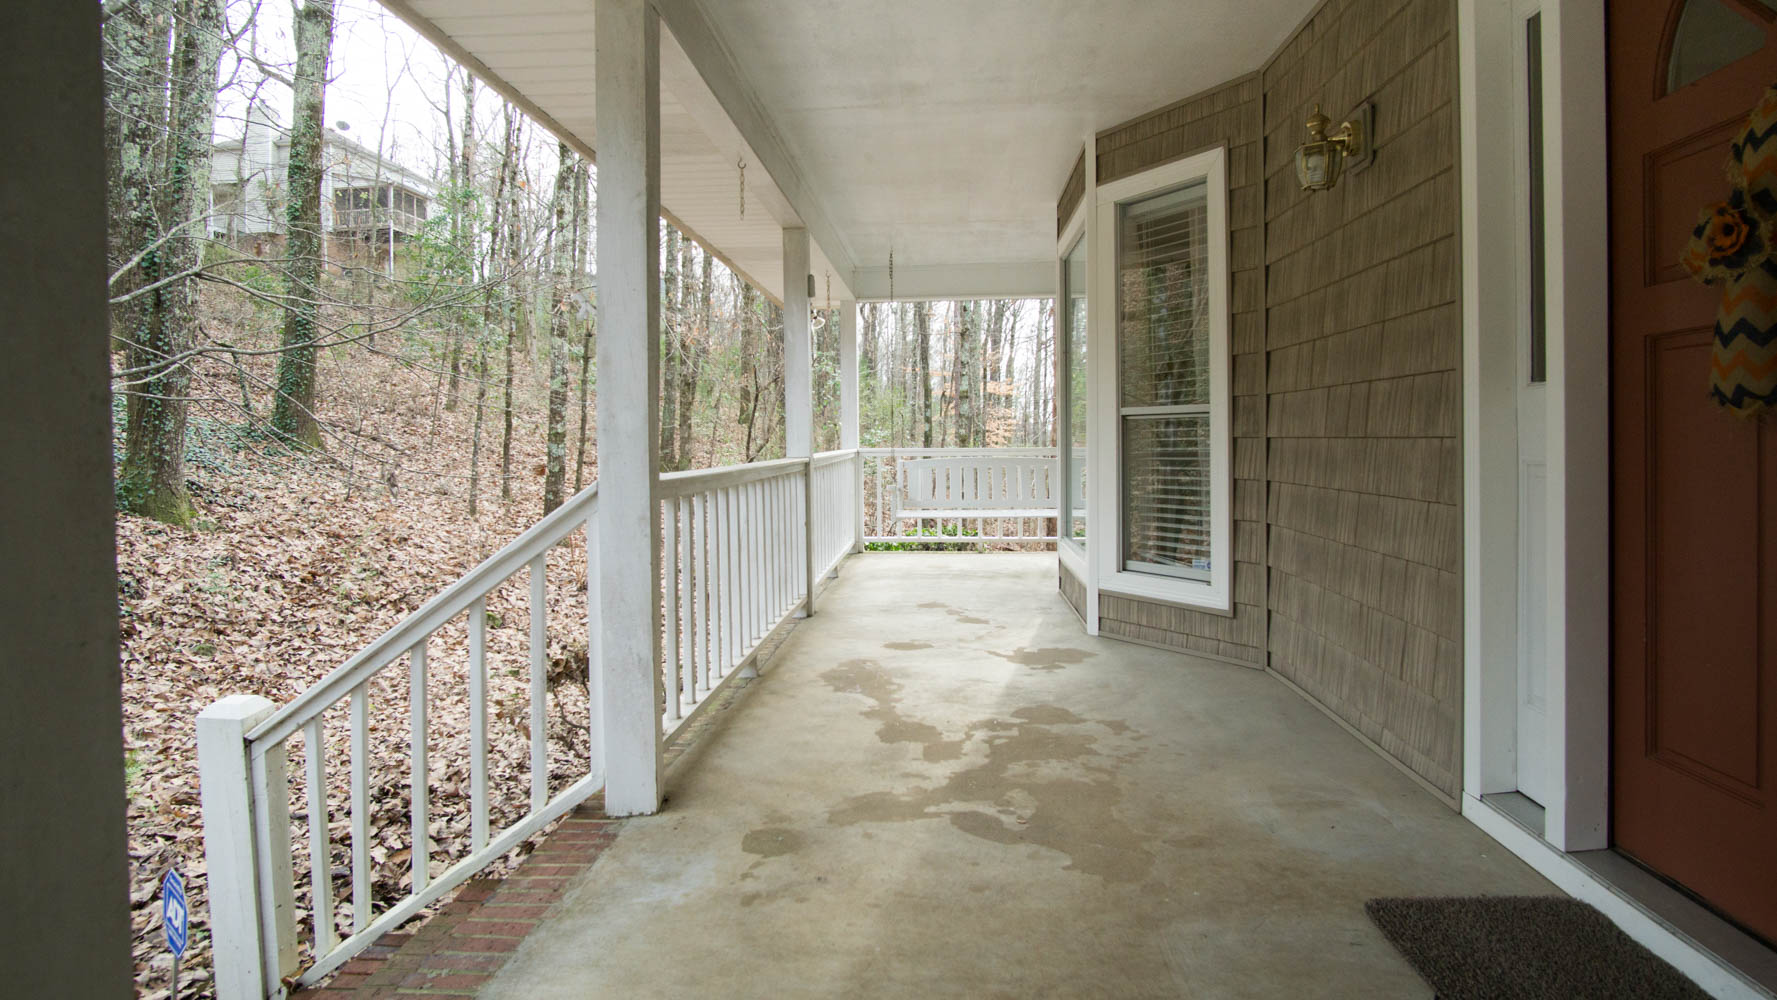 Gas Fireplace Birmingham Al 3976 South Shades Crest Road, Hoover, Al 35244 * Forsale